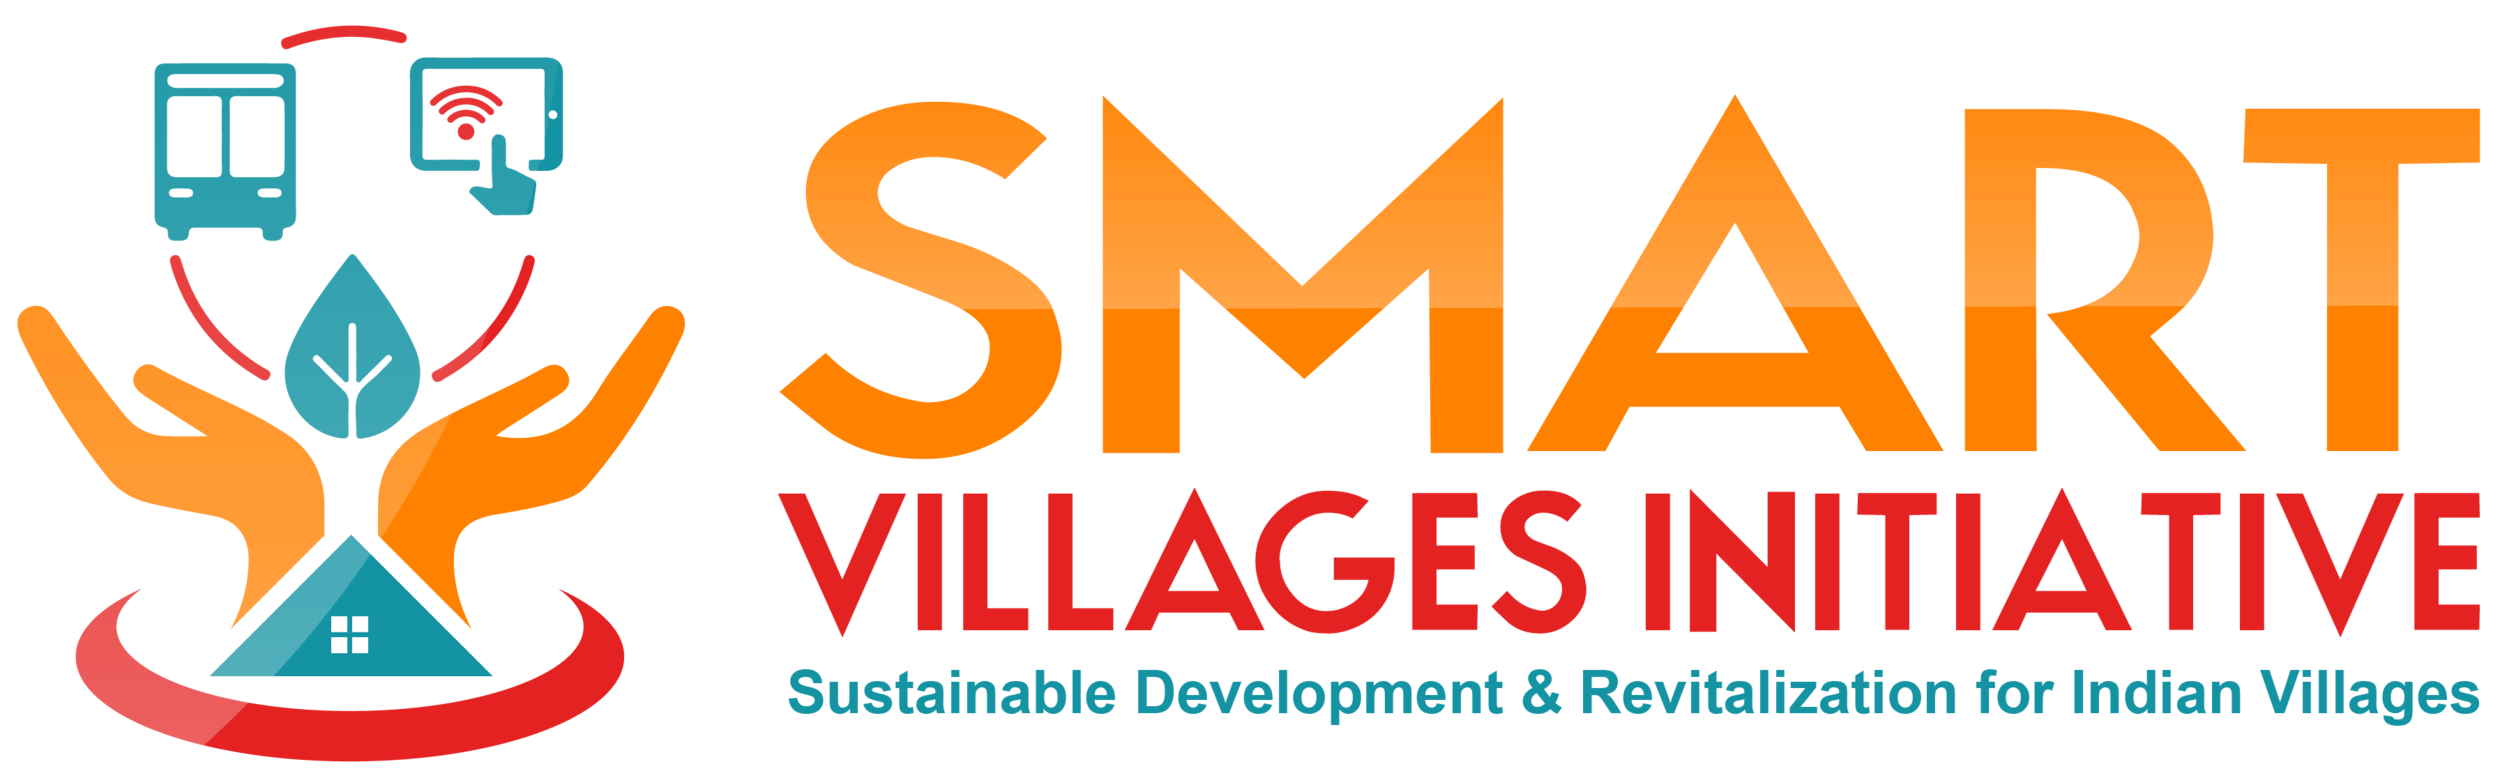 SMART VILLAGES INITIATIVE_1Final-01.png